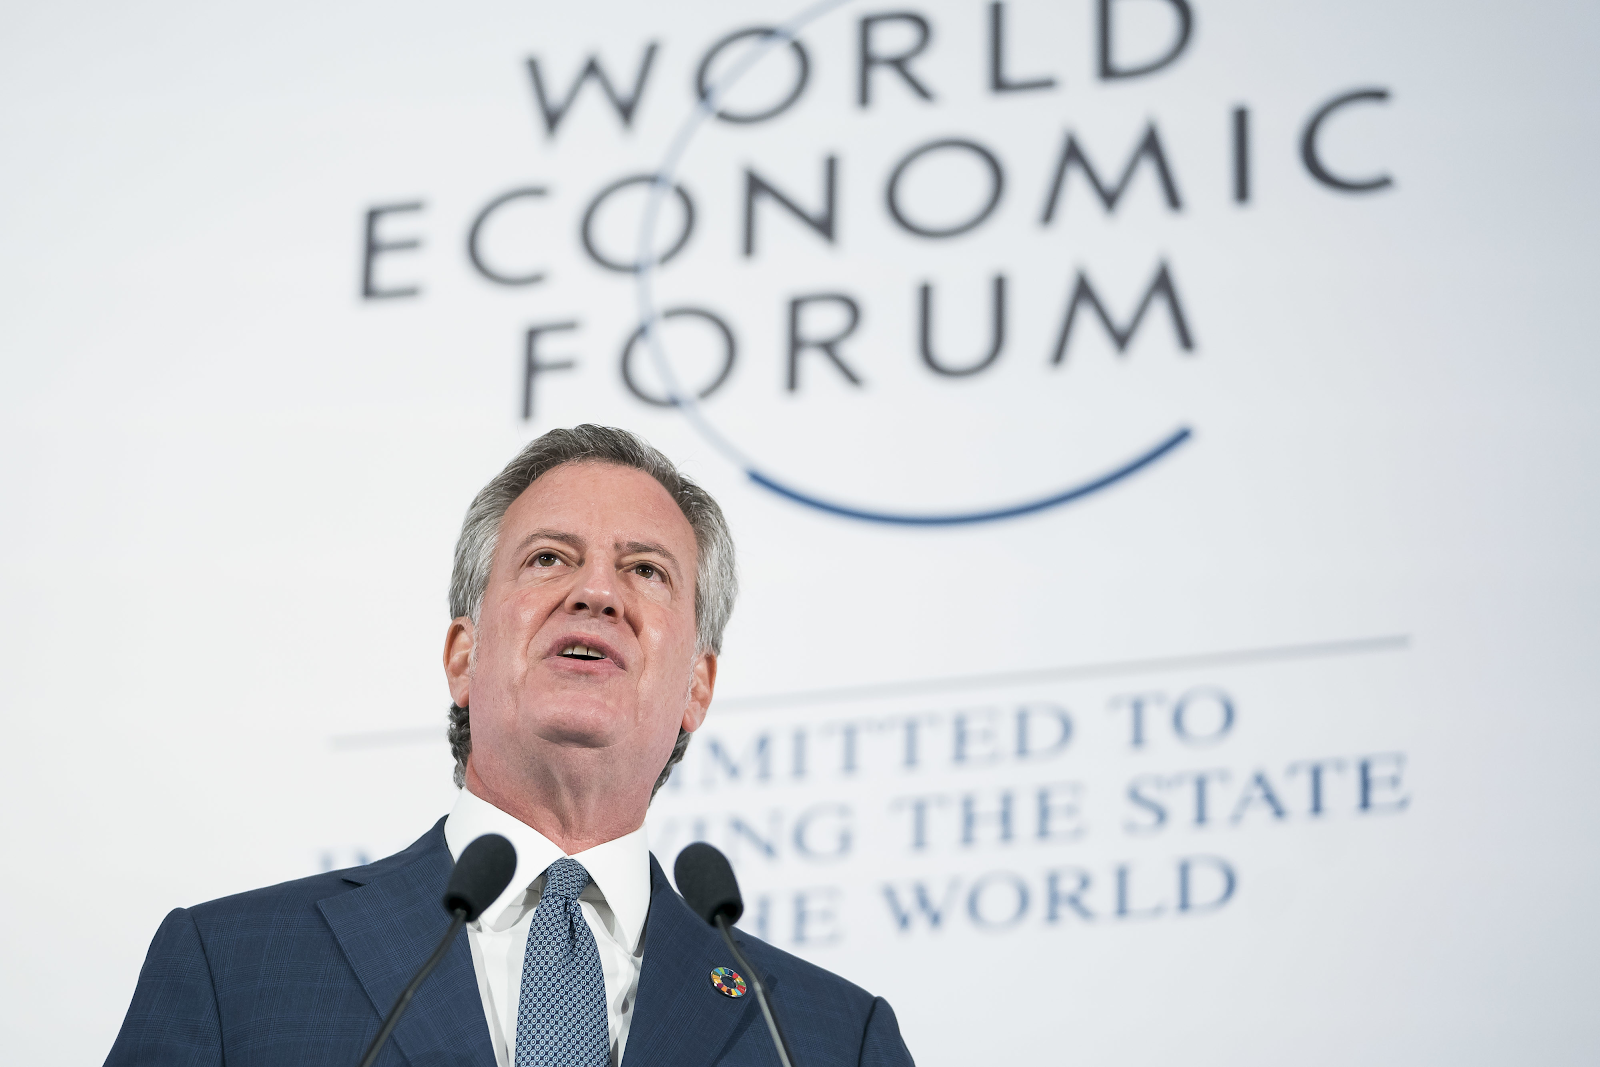 New York City Mayor Bill de Blasio speaking at the World Economic Forum's Sustainable Development Impact Summit.